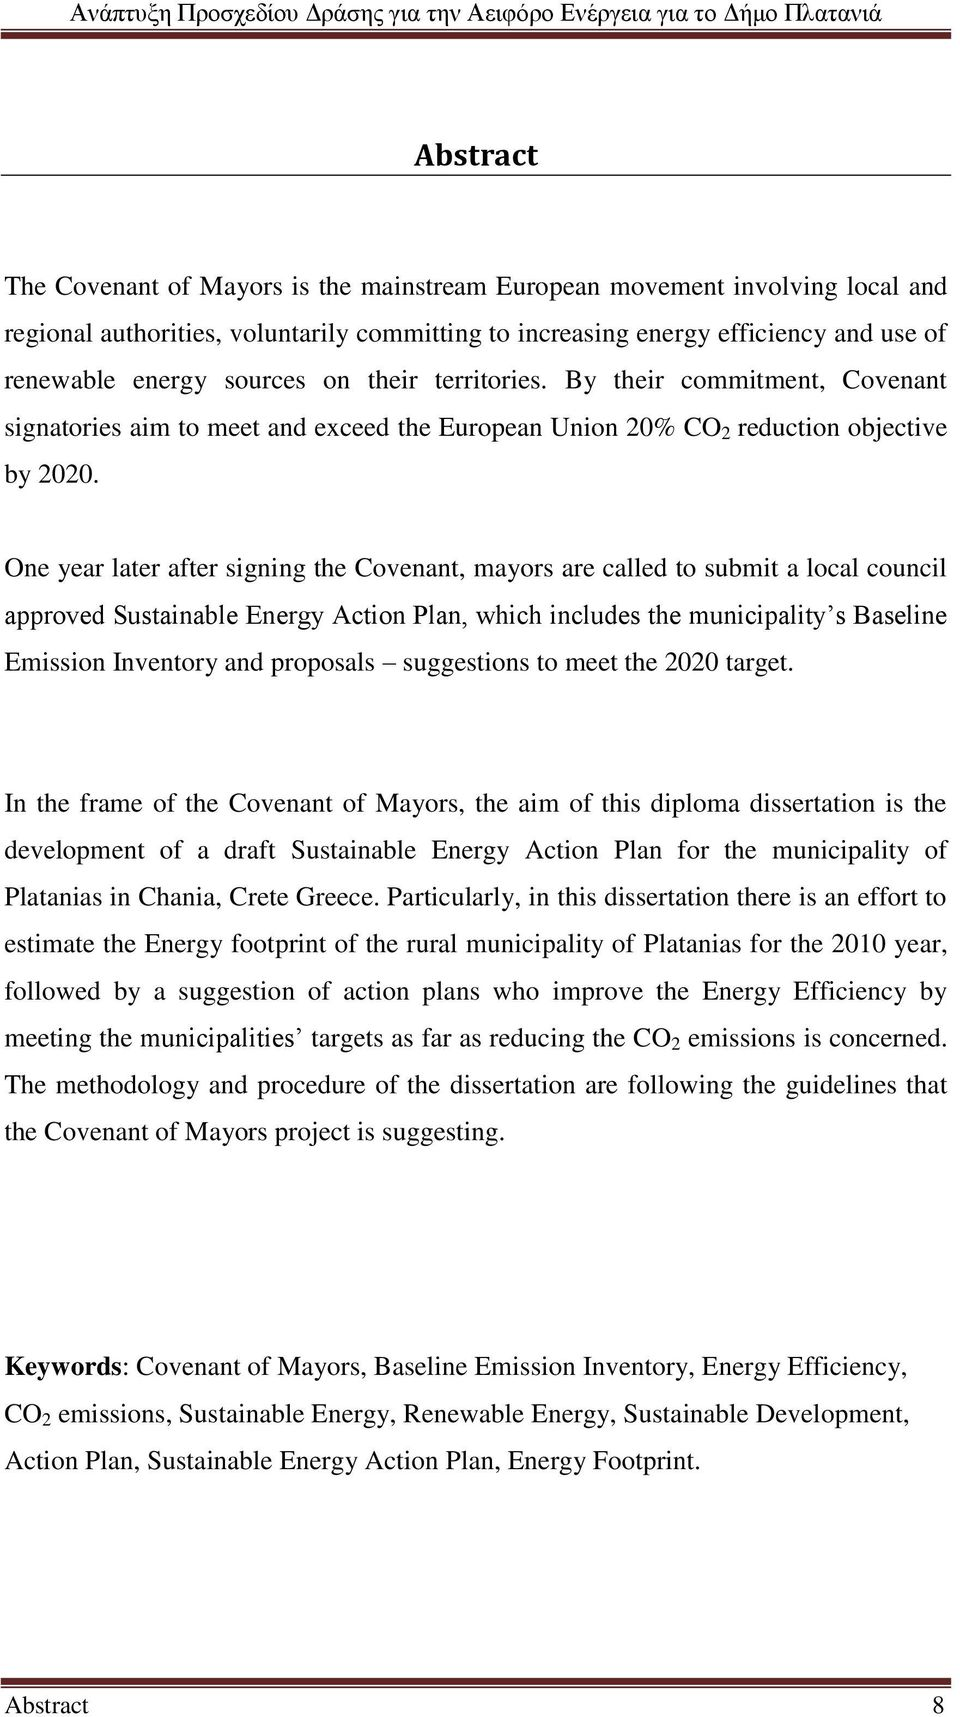 One year later after signing the Covenant, mayors are called to submit a local council approved Sustainable Energy Action Plan, which includes the municipality s Baseline Emission Inventory and